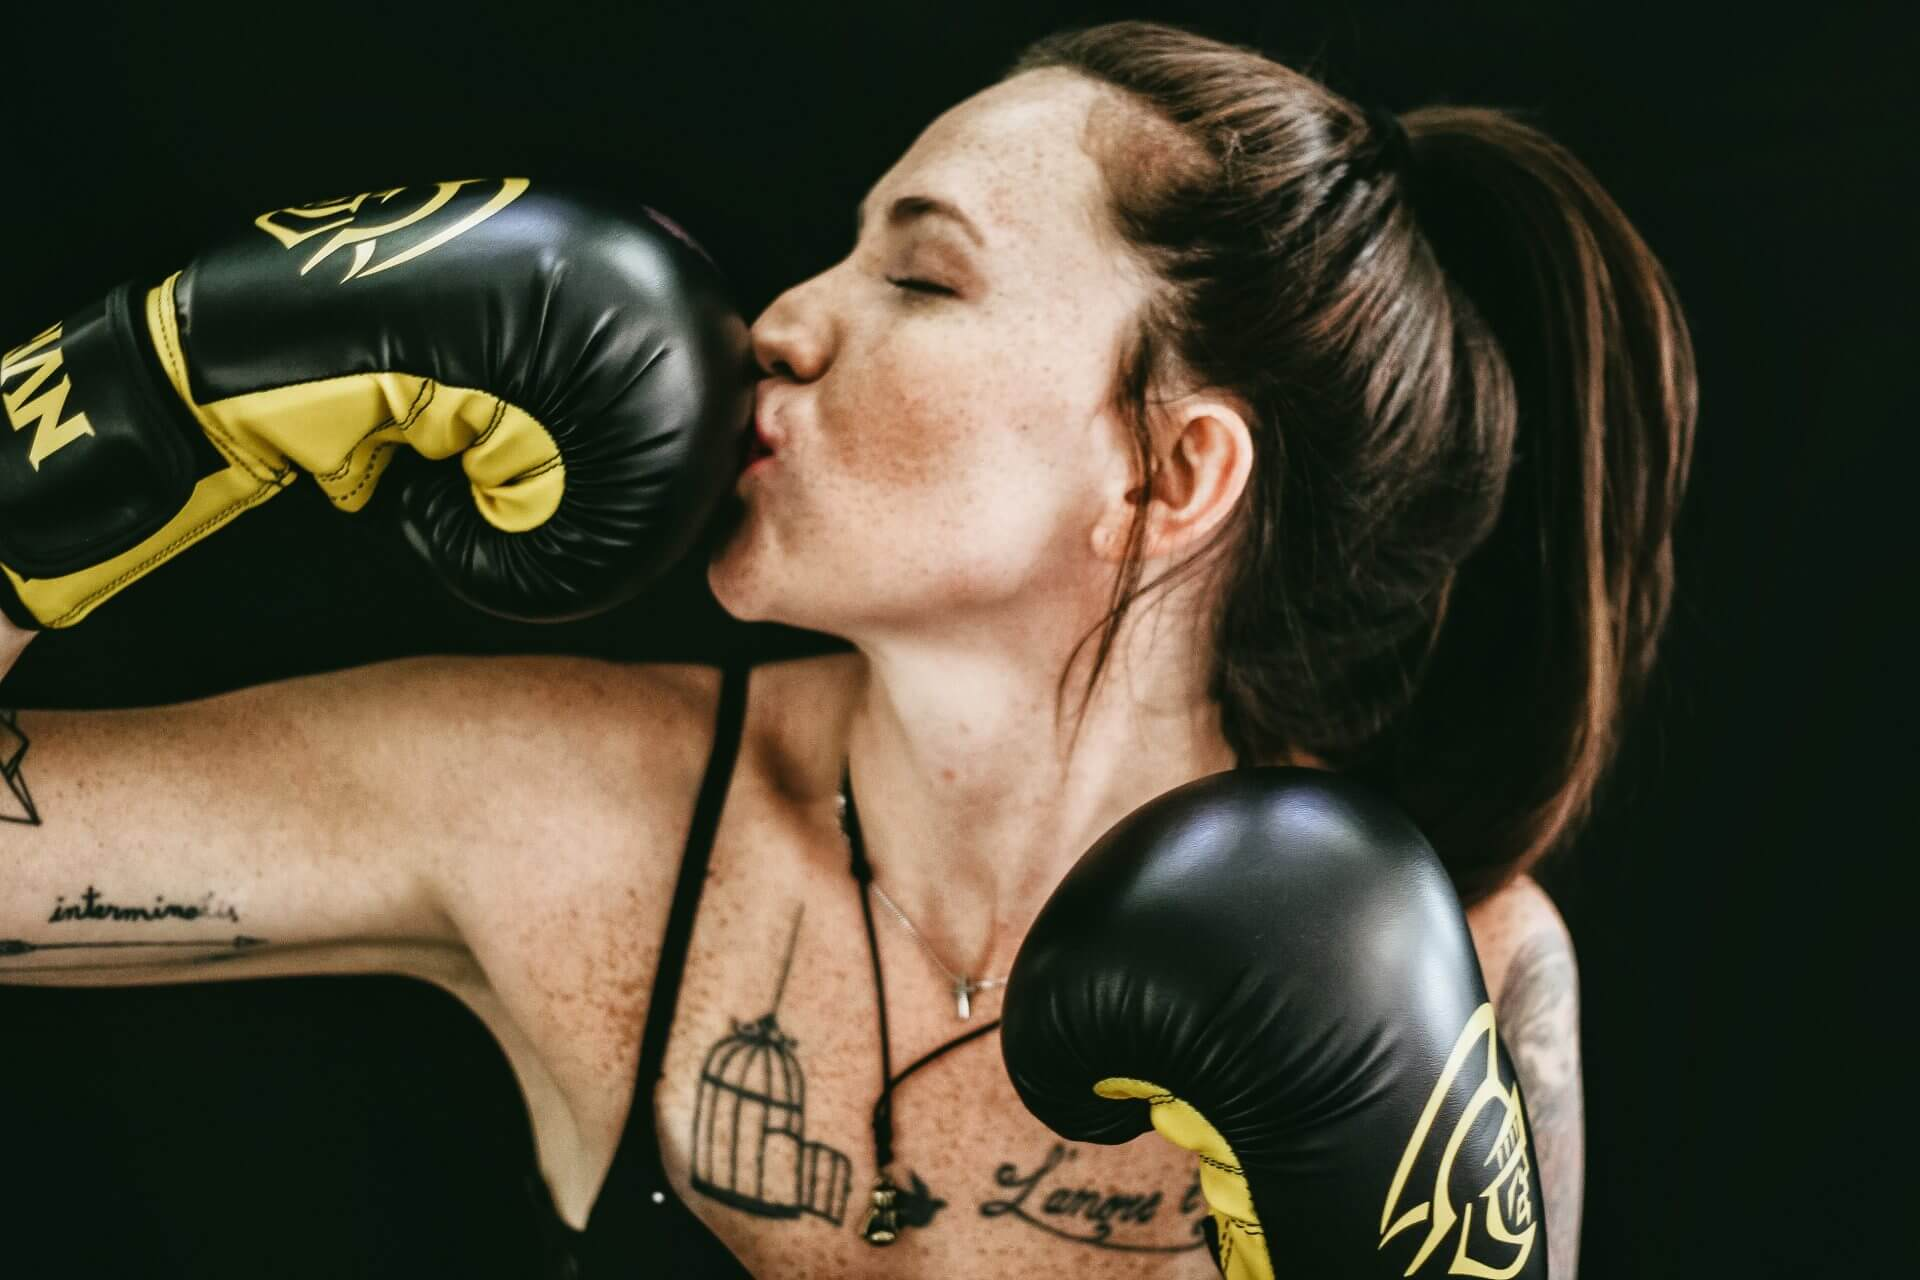 Boxing CLASSES IN HOUSTON